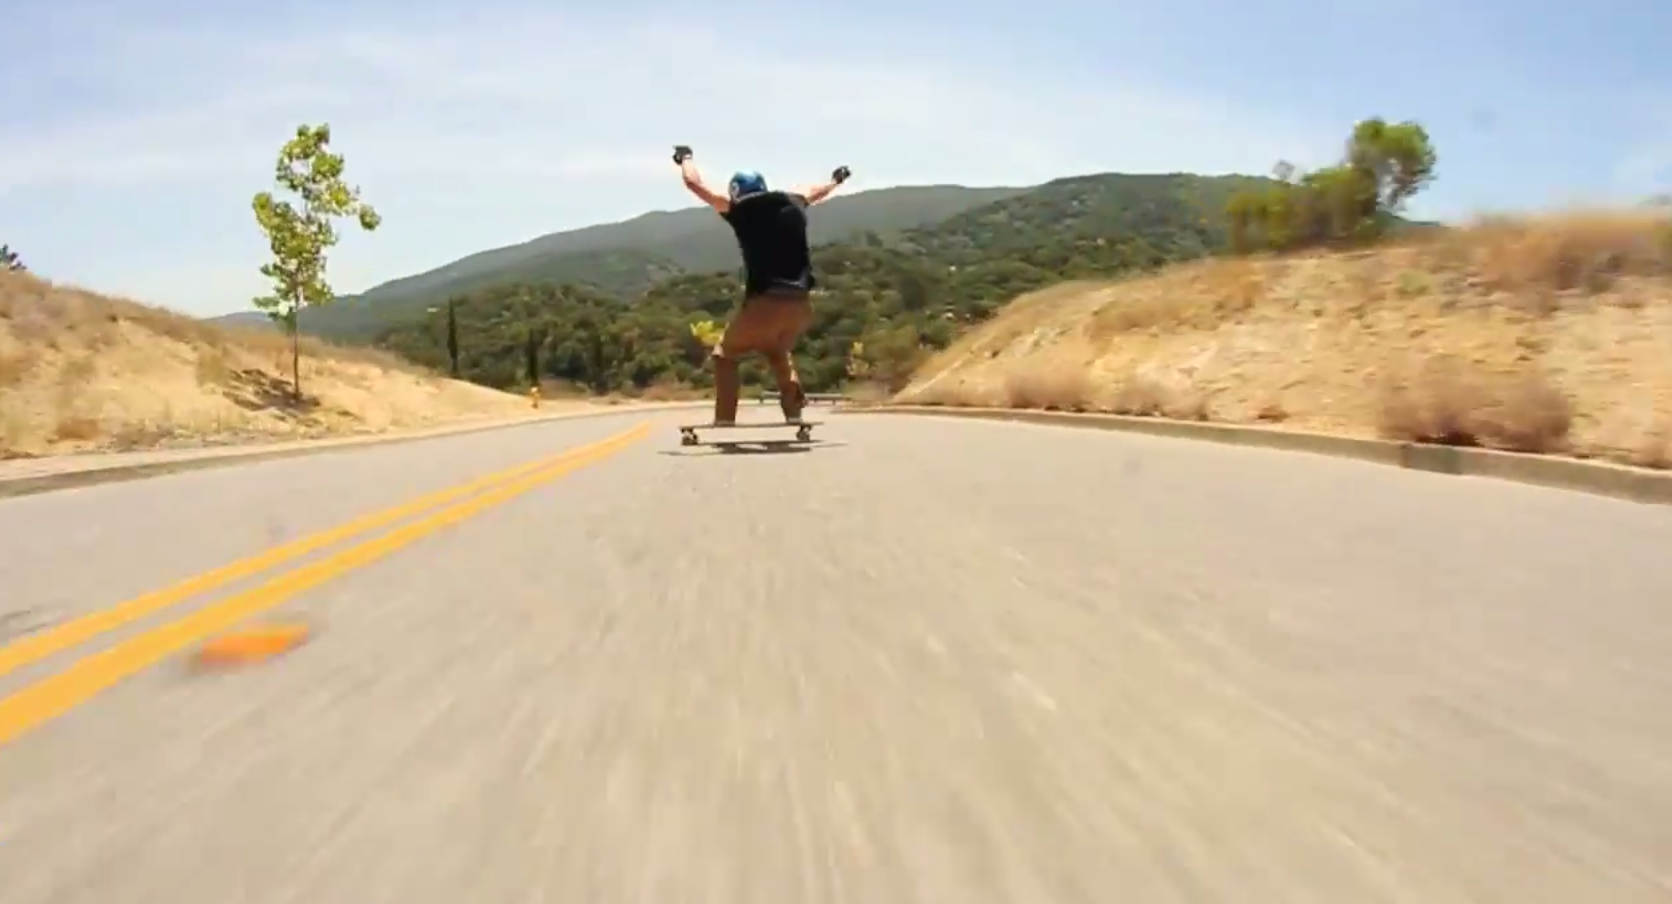 Fast and Dangerous Skateboarding with Eric Jensen